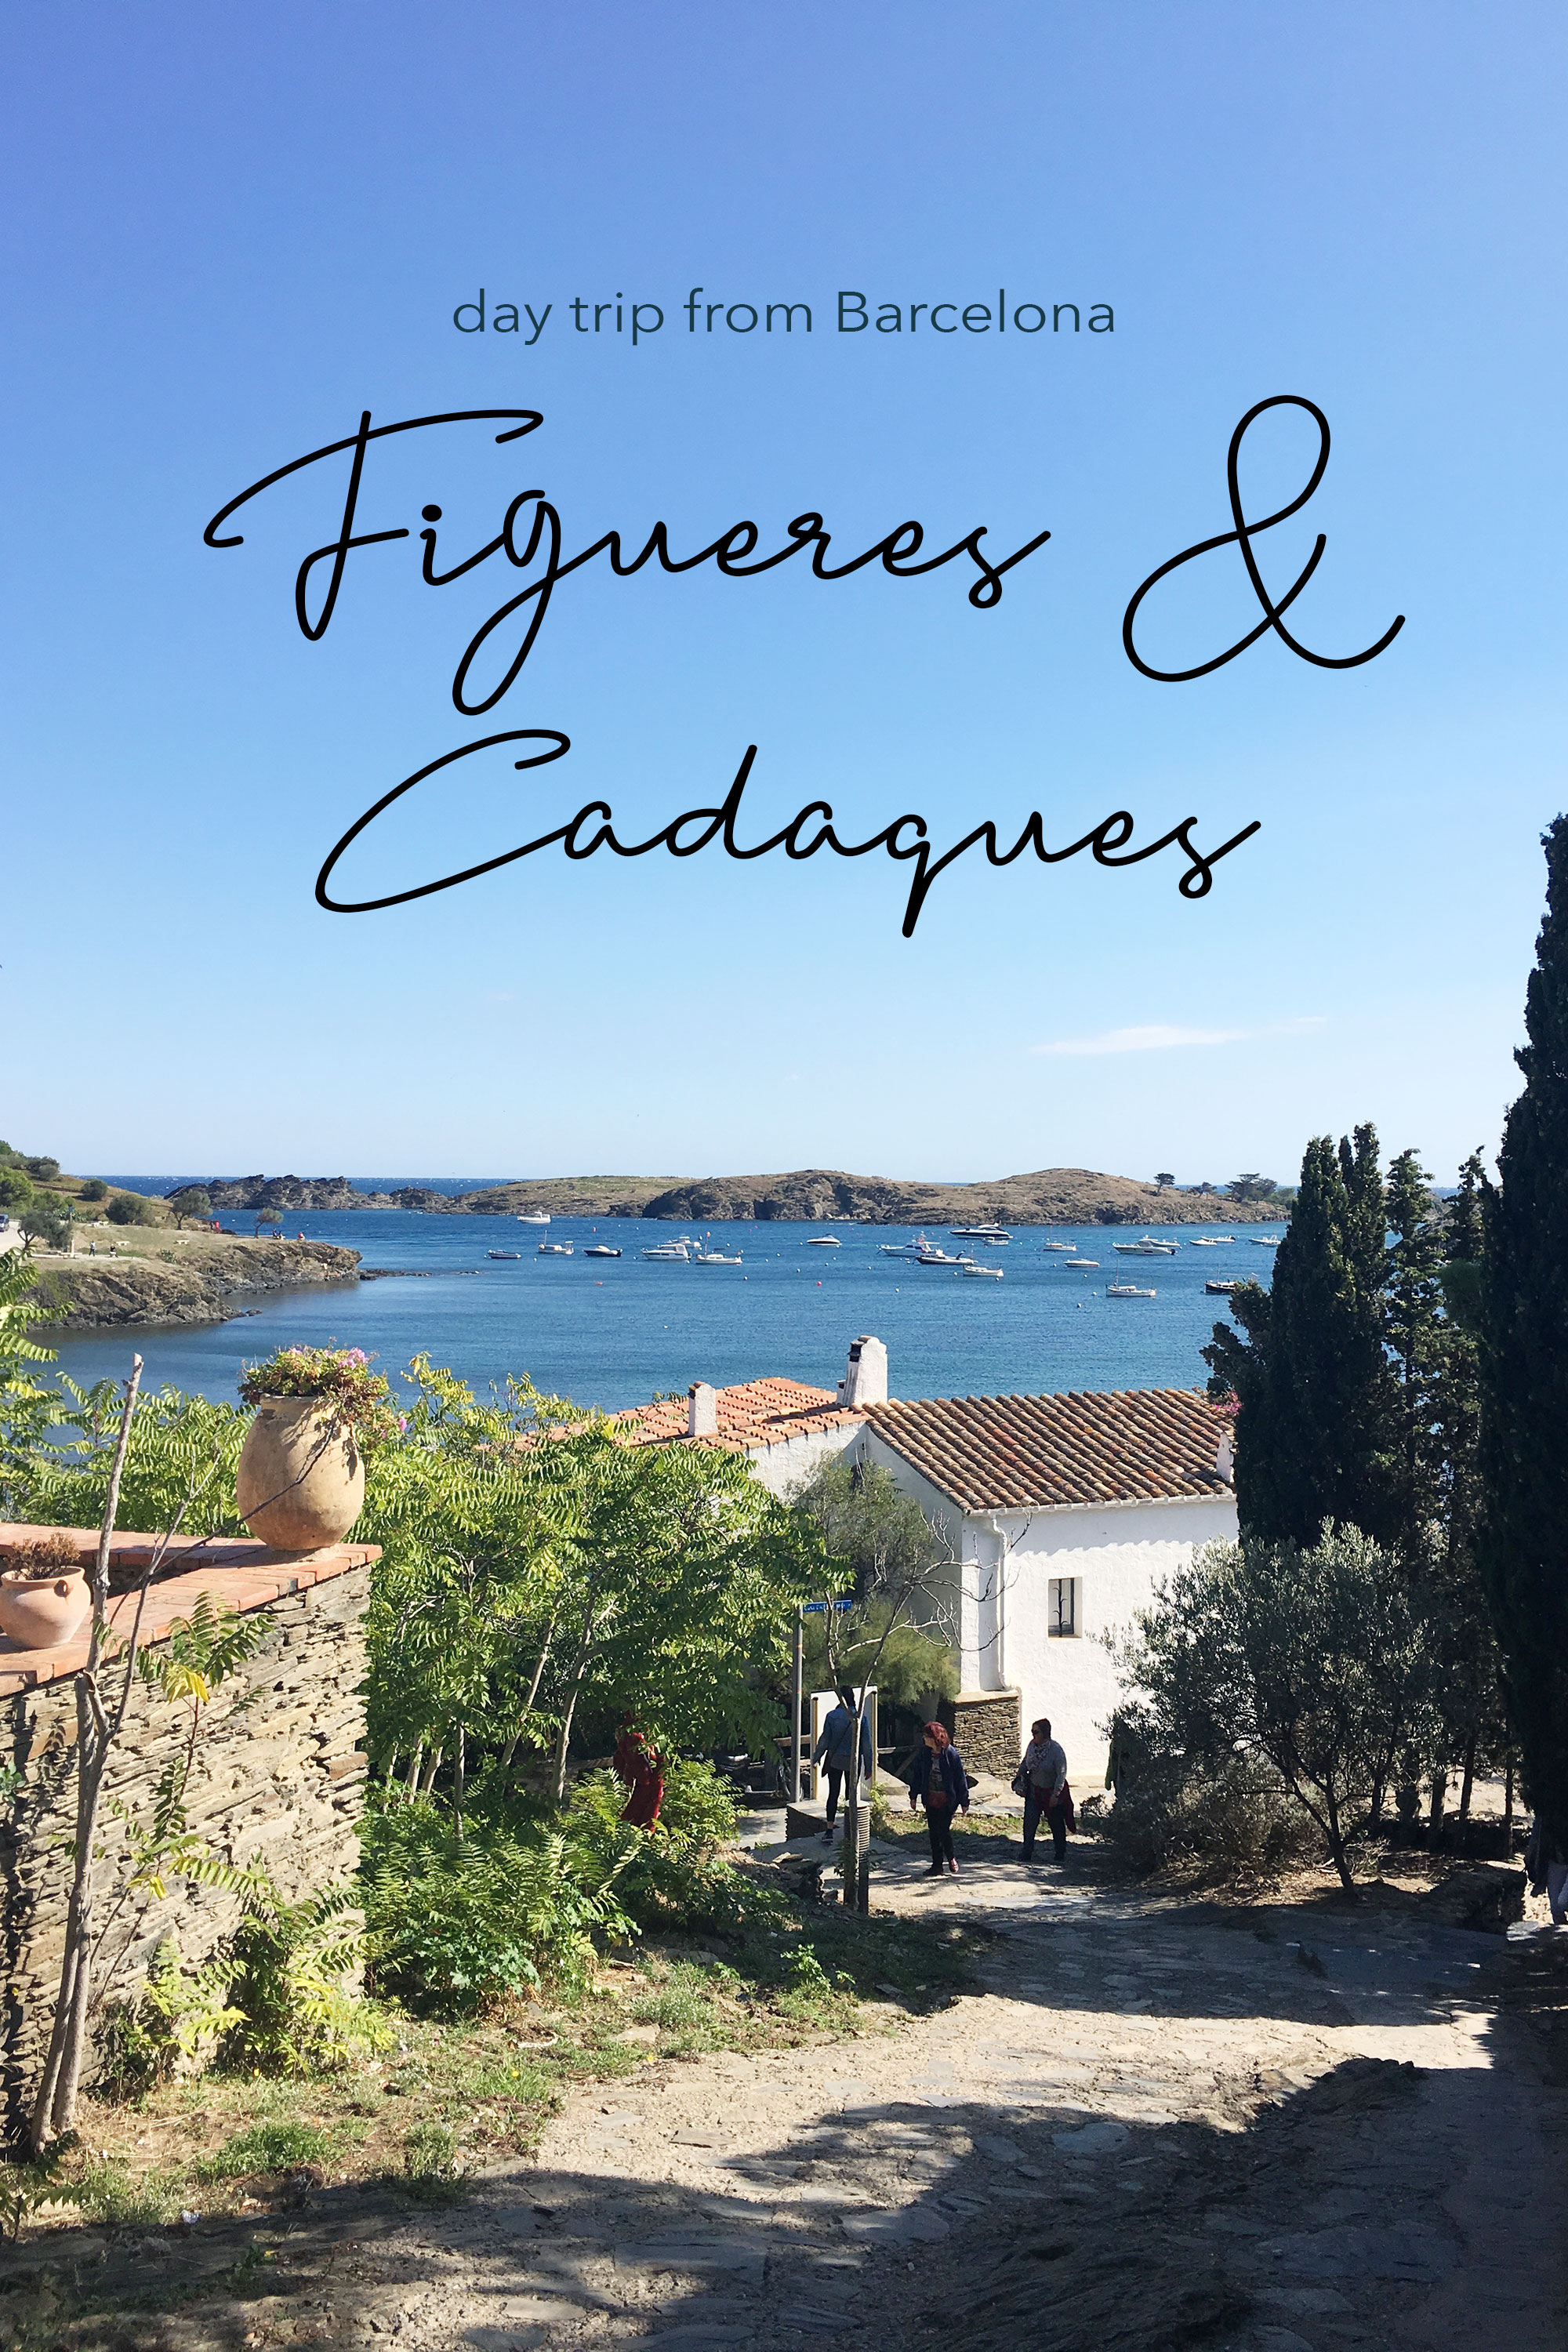 Day trip from Barcelona to Figueres and Cadaques #daytripfrombarcelona #cadaques #dalimuseums || Good Living Blog